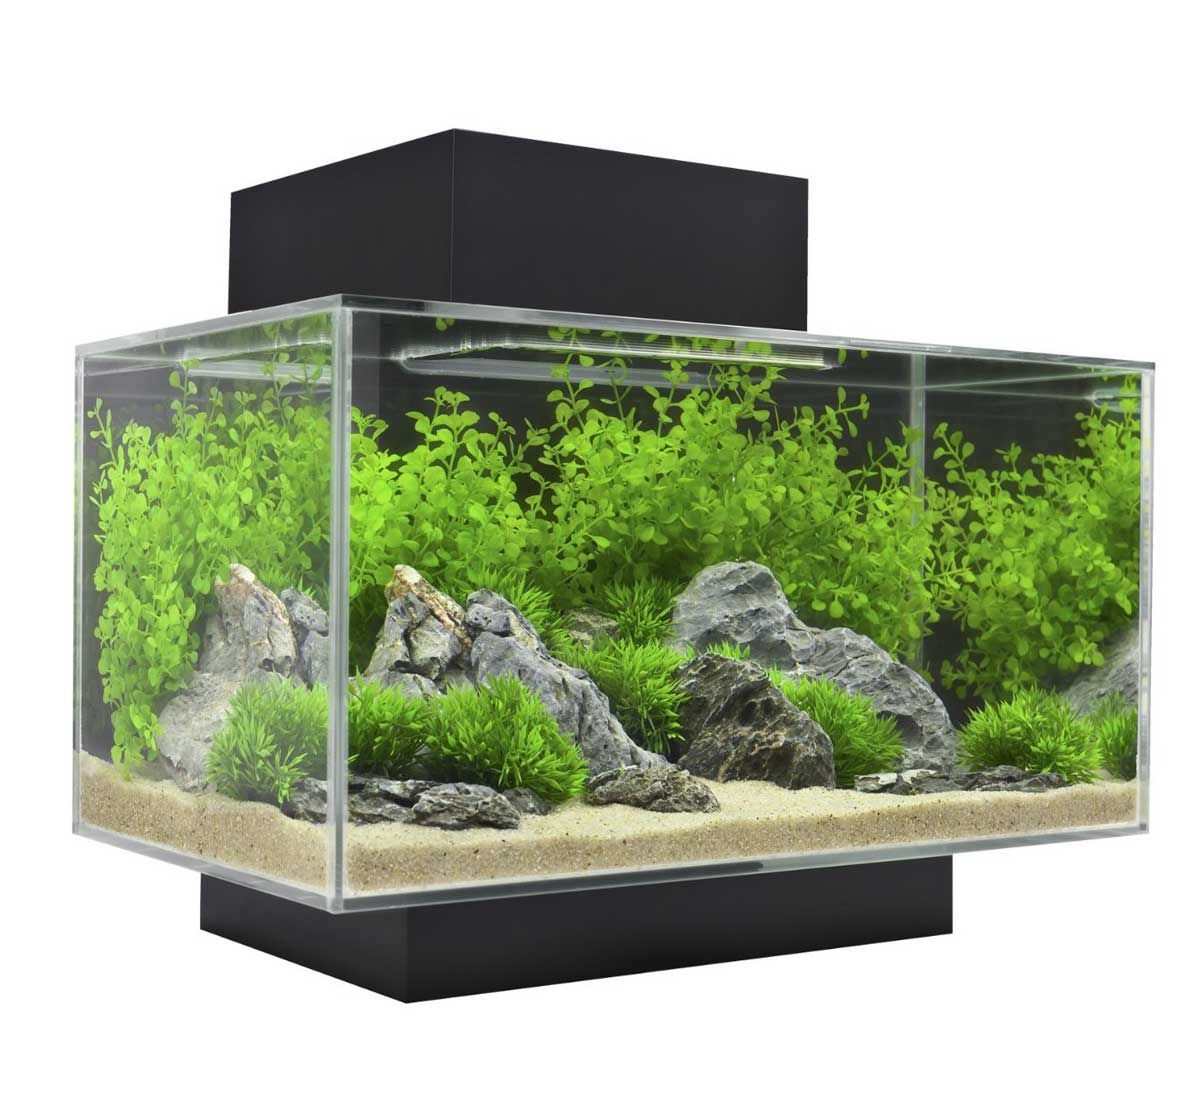 Fish for aquarium online -